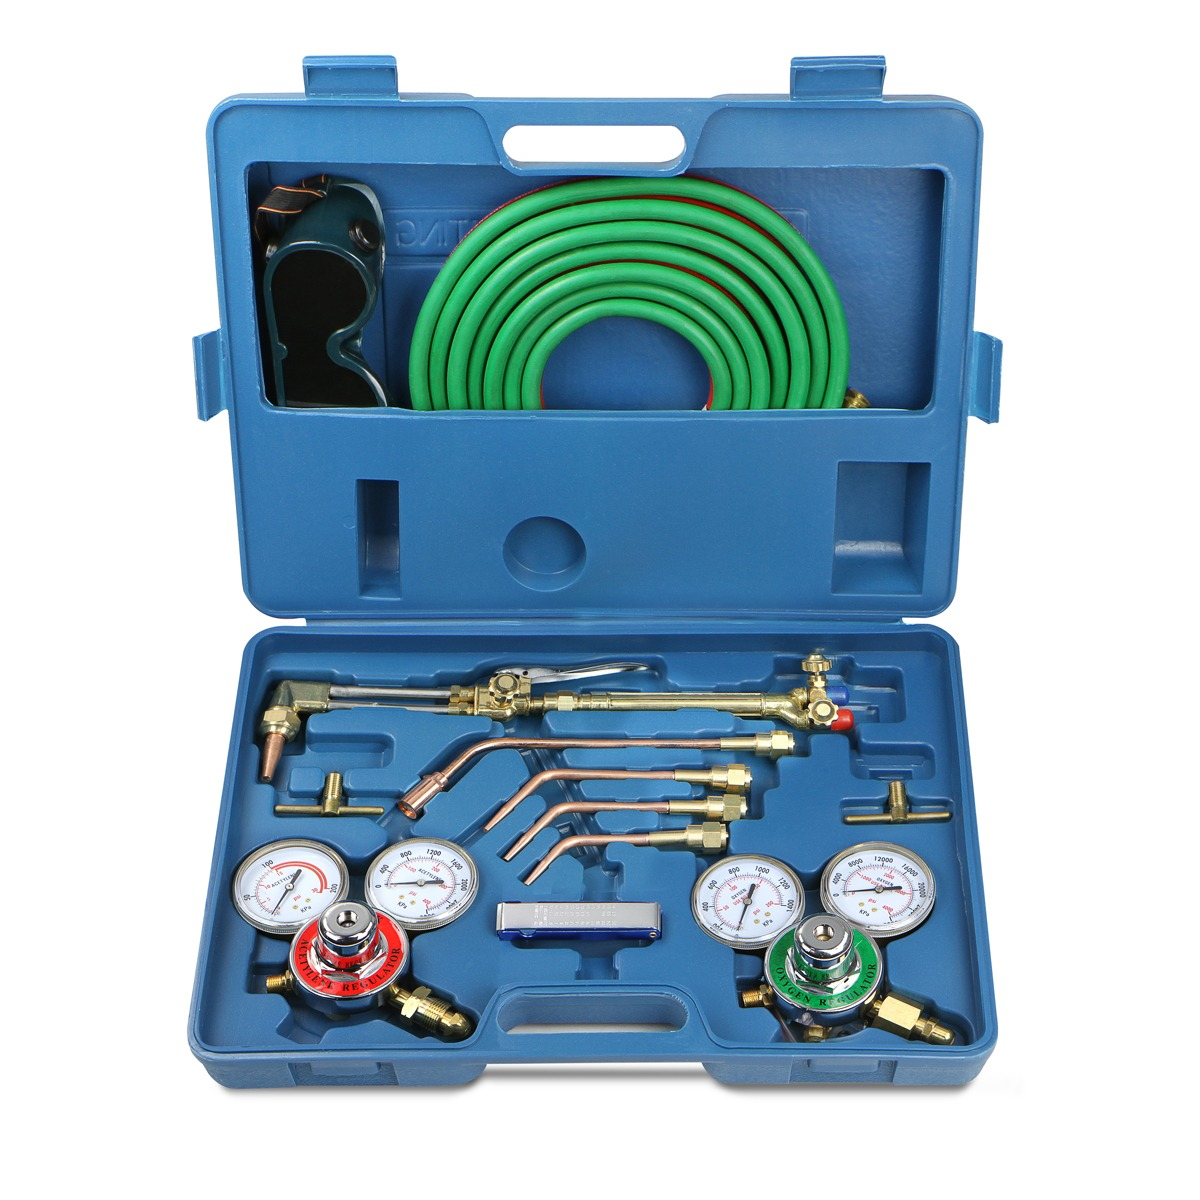 Oxygen Acetylene Welding Cutting Torch Tool Kit with Regularors & Twin Hose